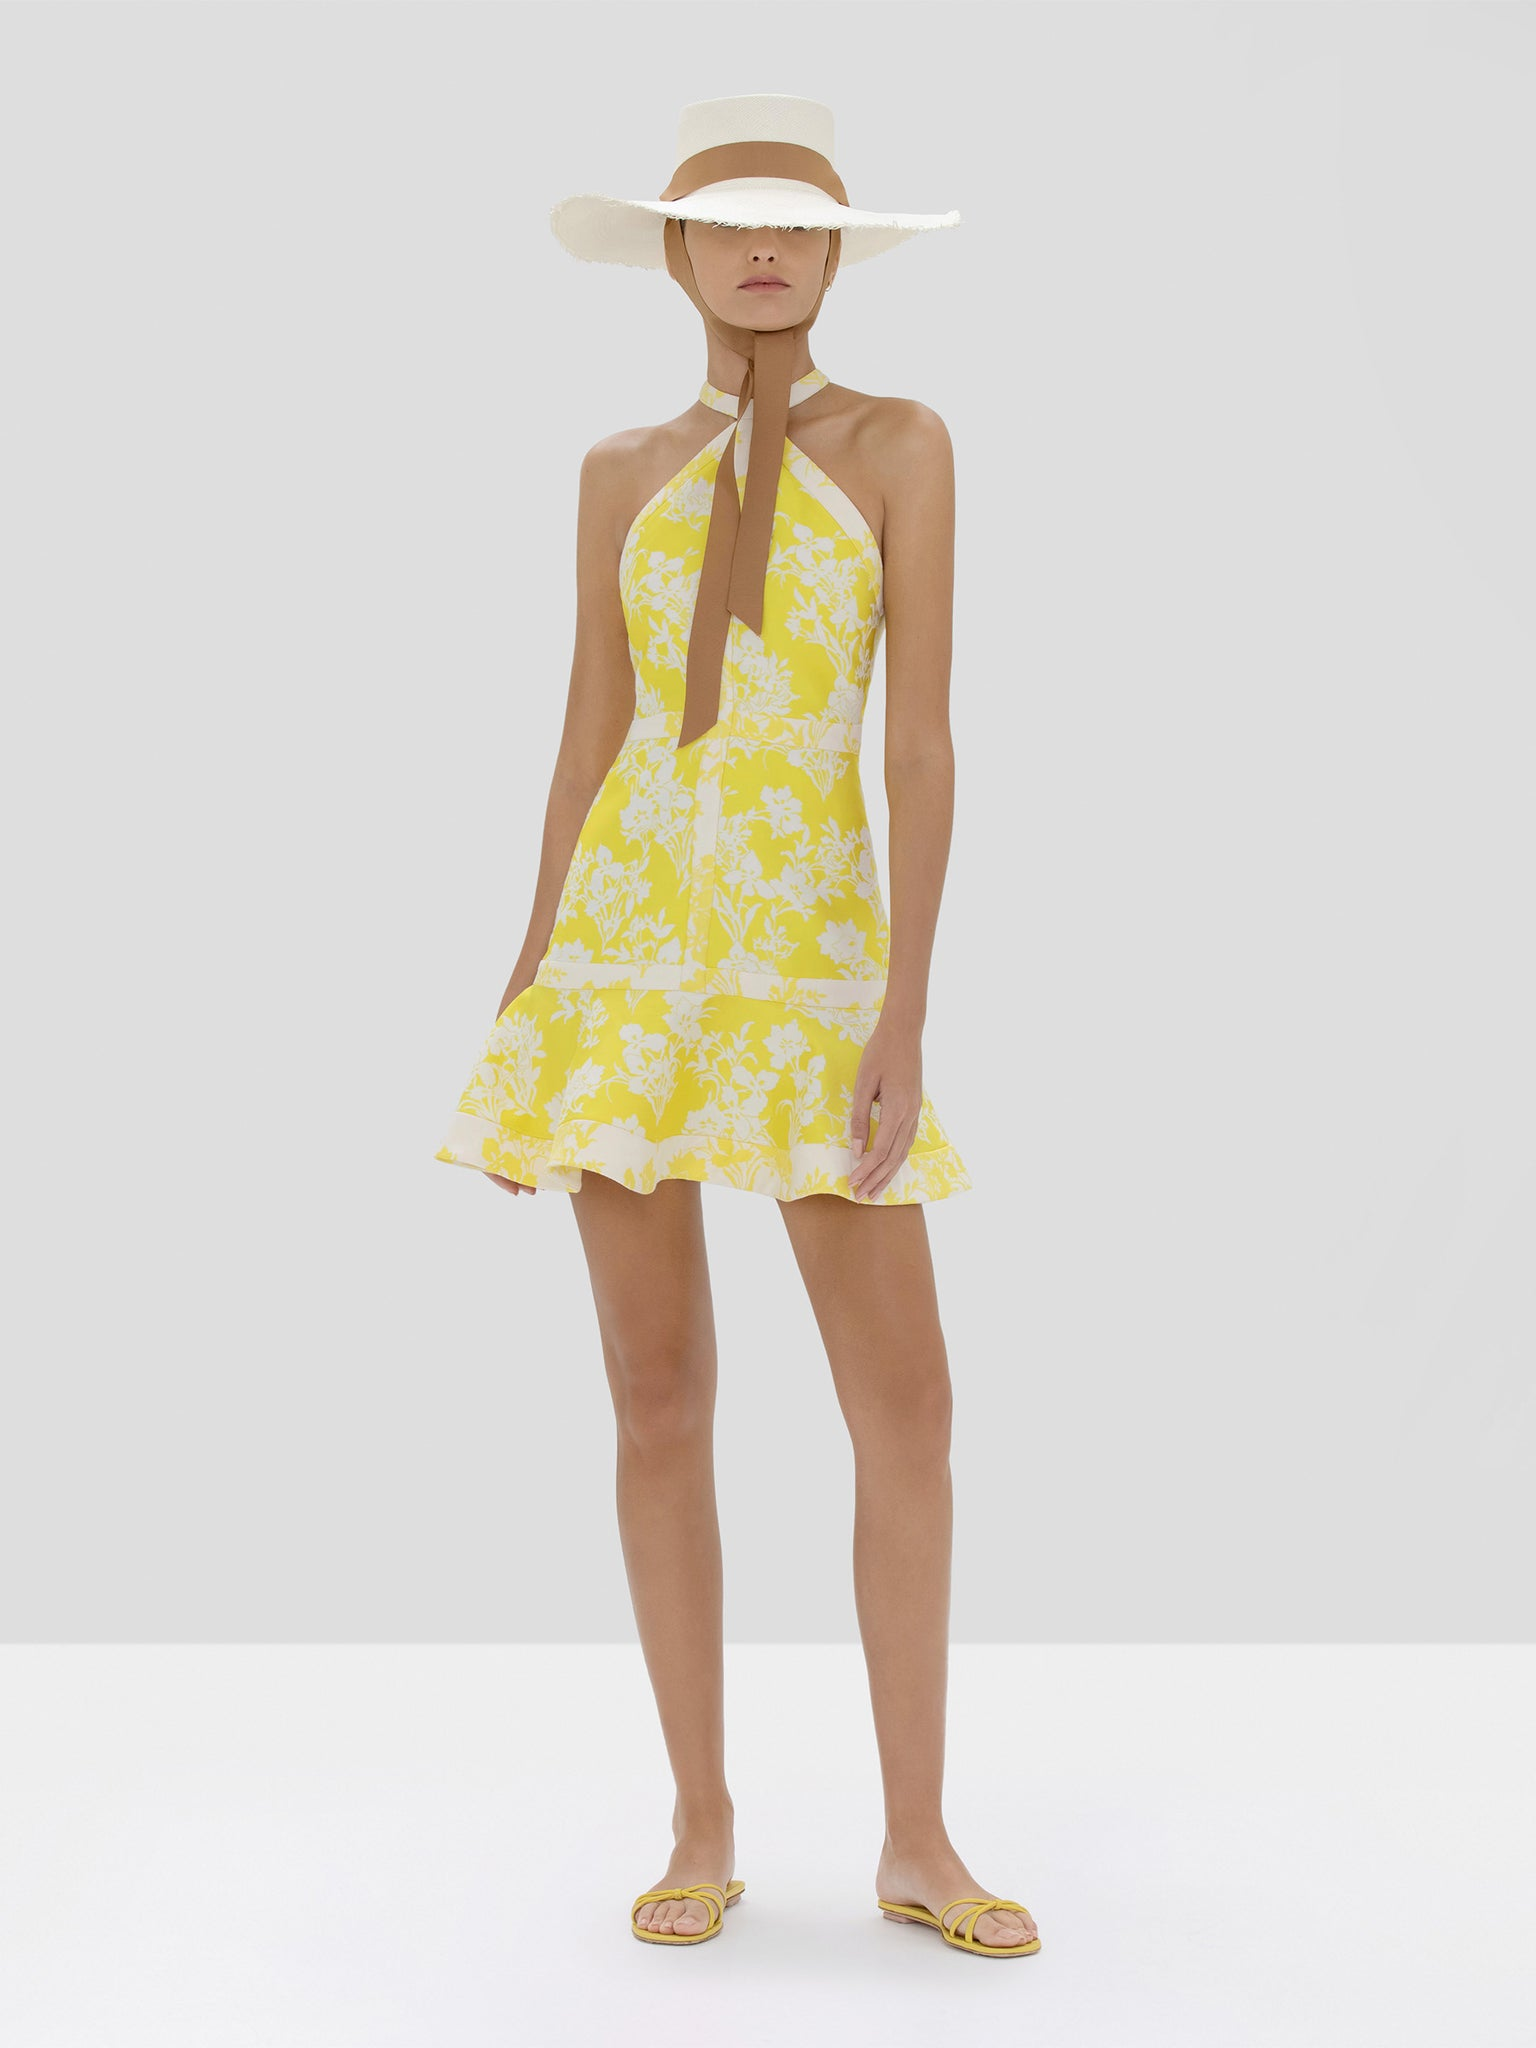 Alexis Solana Dress in Citrus Jacquard from Spring Summer 2020 Collection